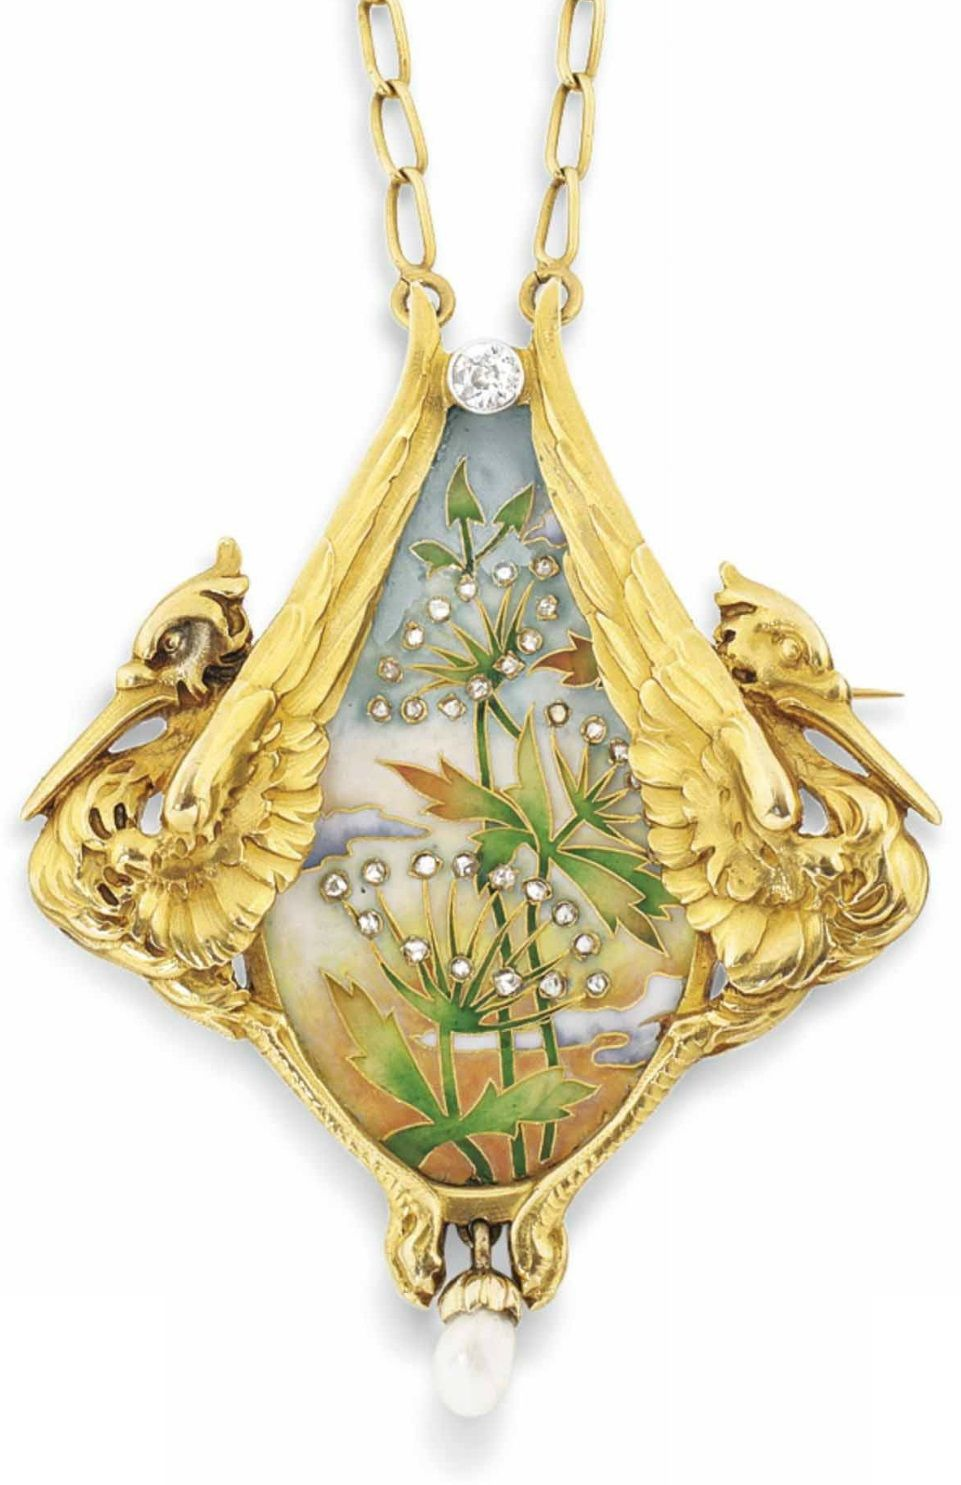 An art nouveau enamel and diamond pendant brooch by antoine